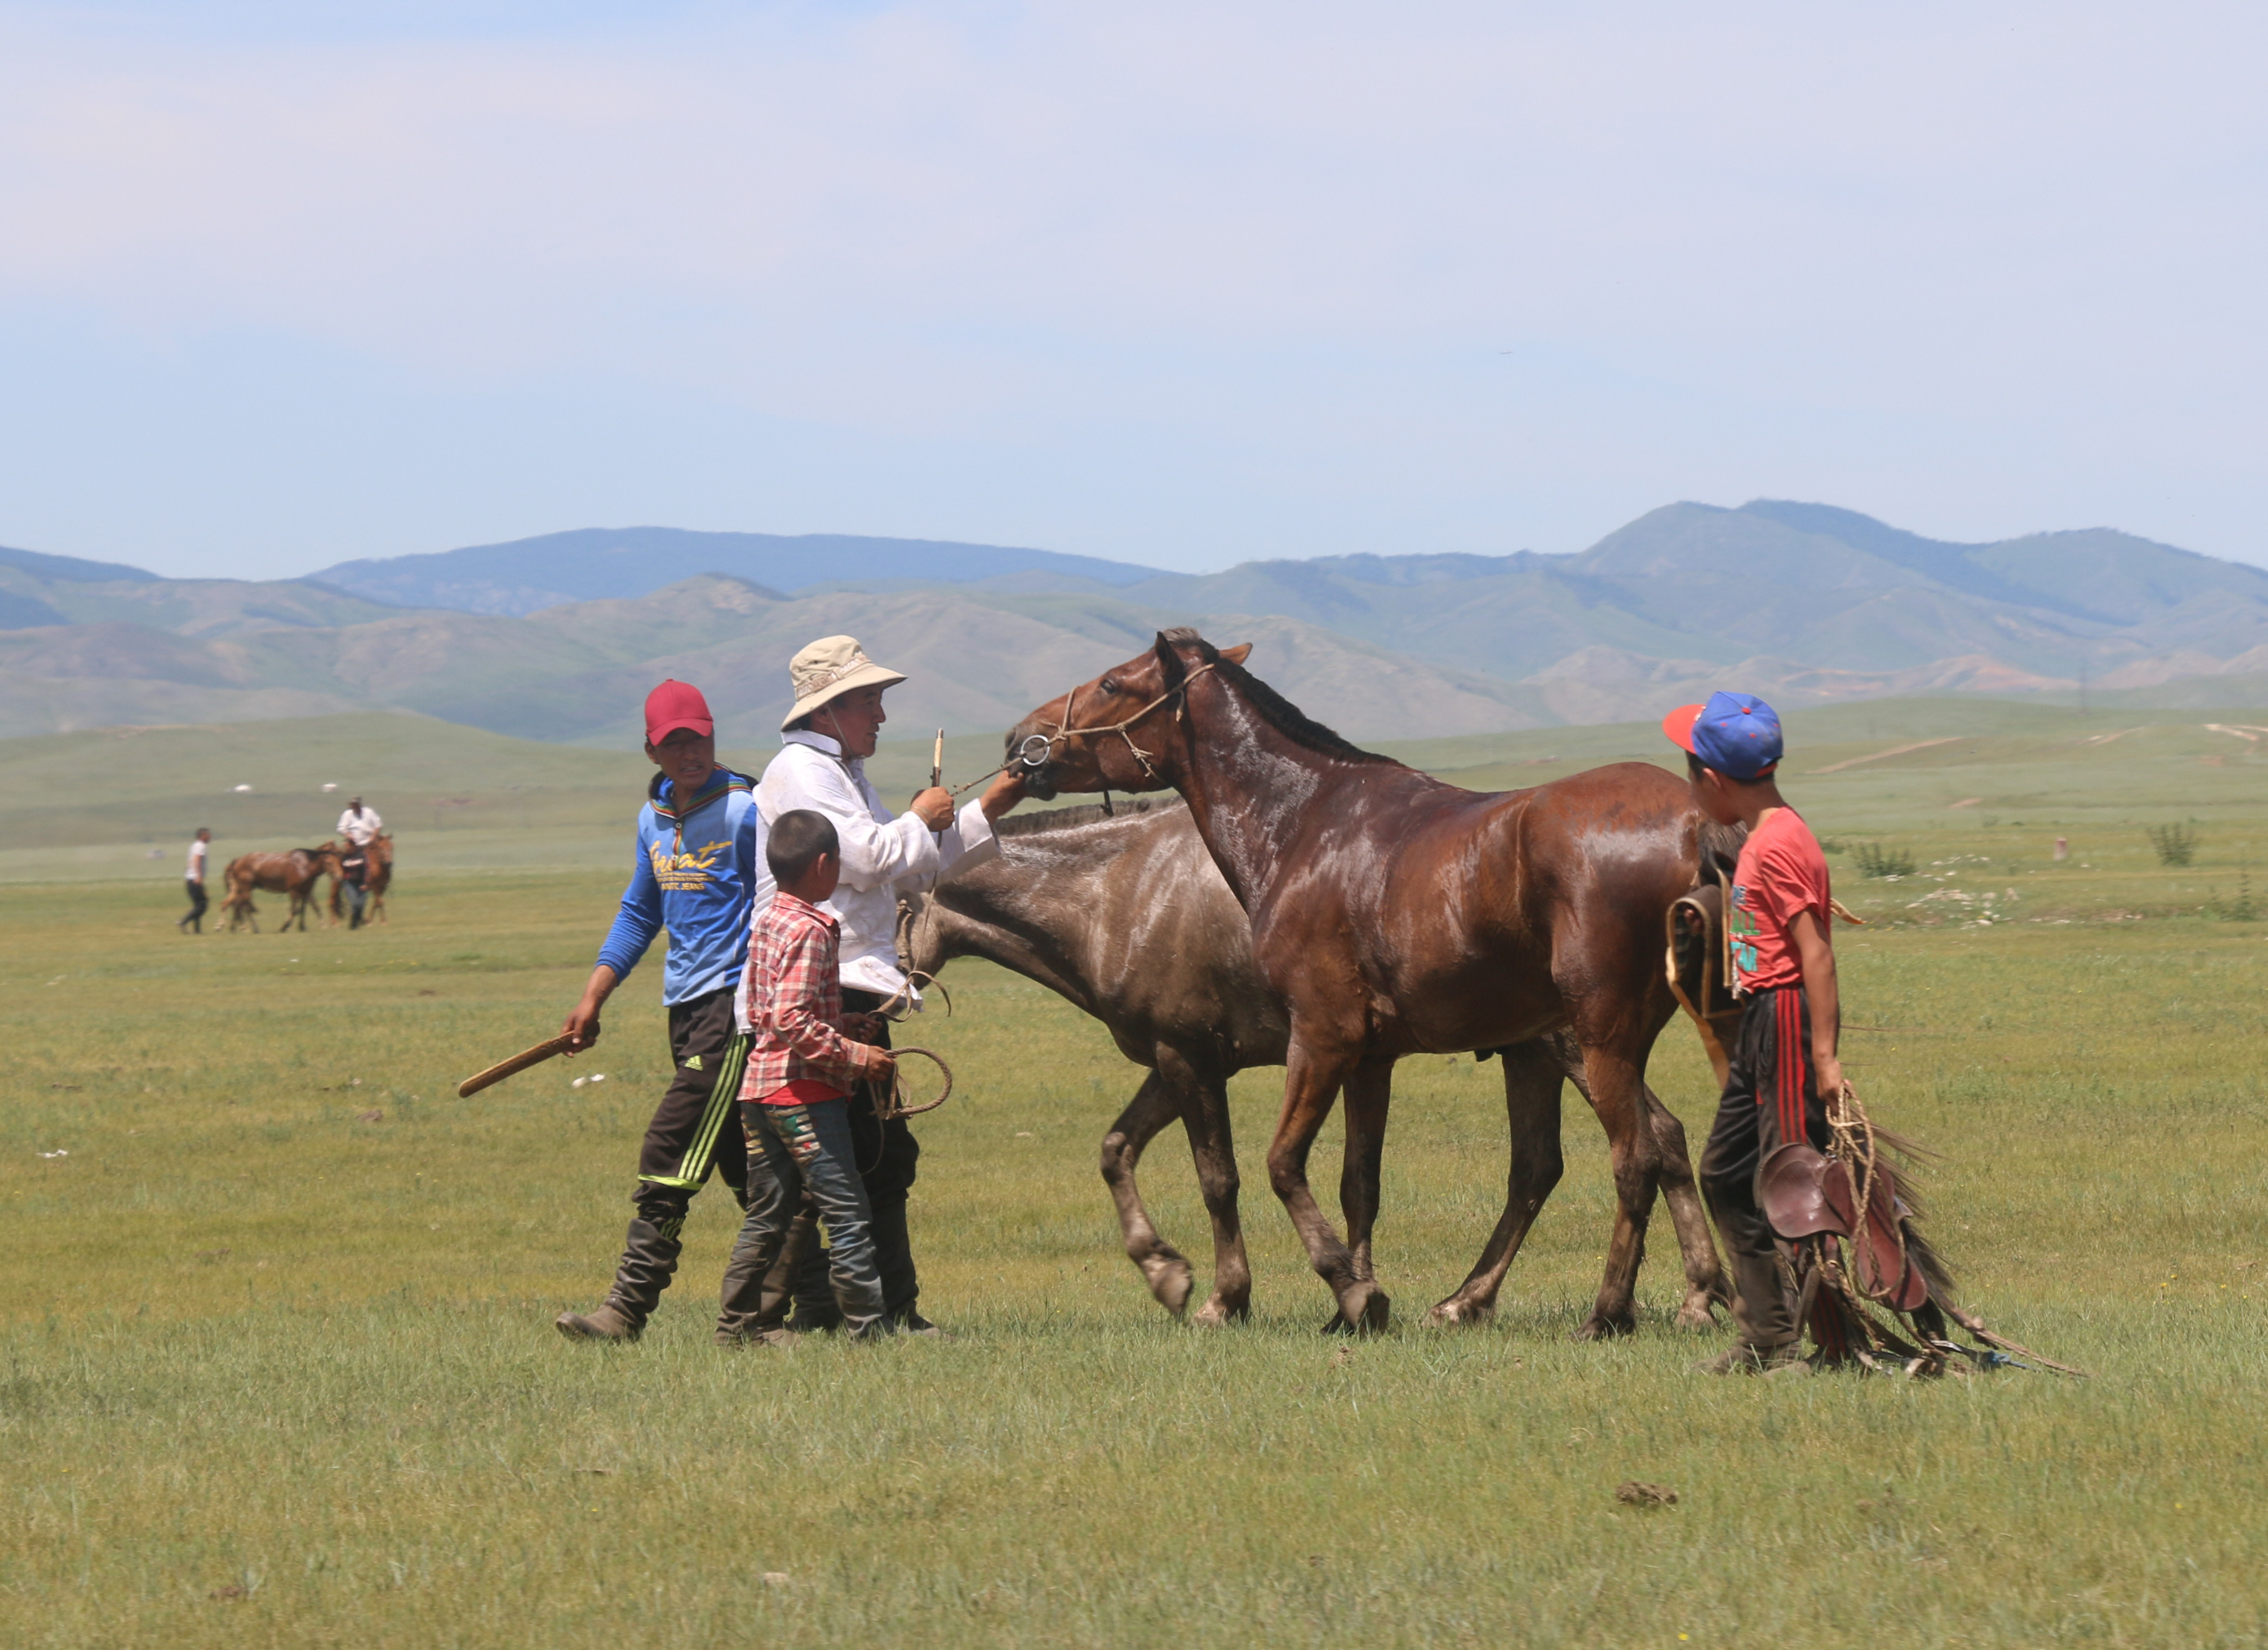 The Herding Life in Mongolia